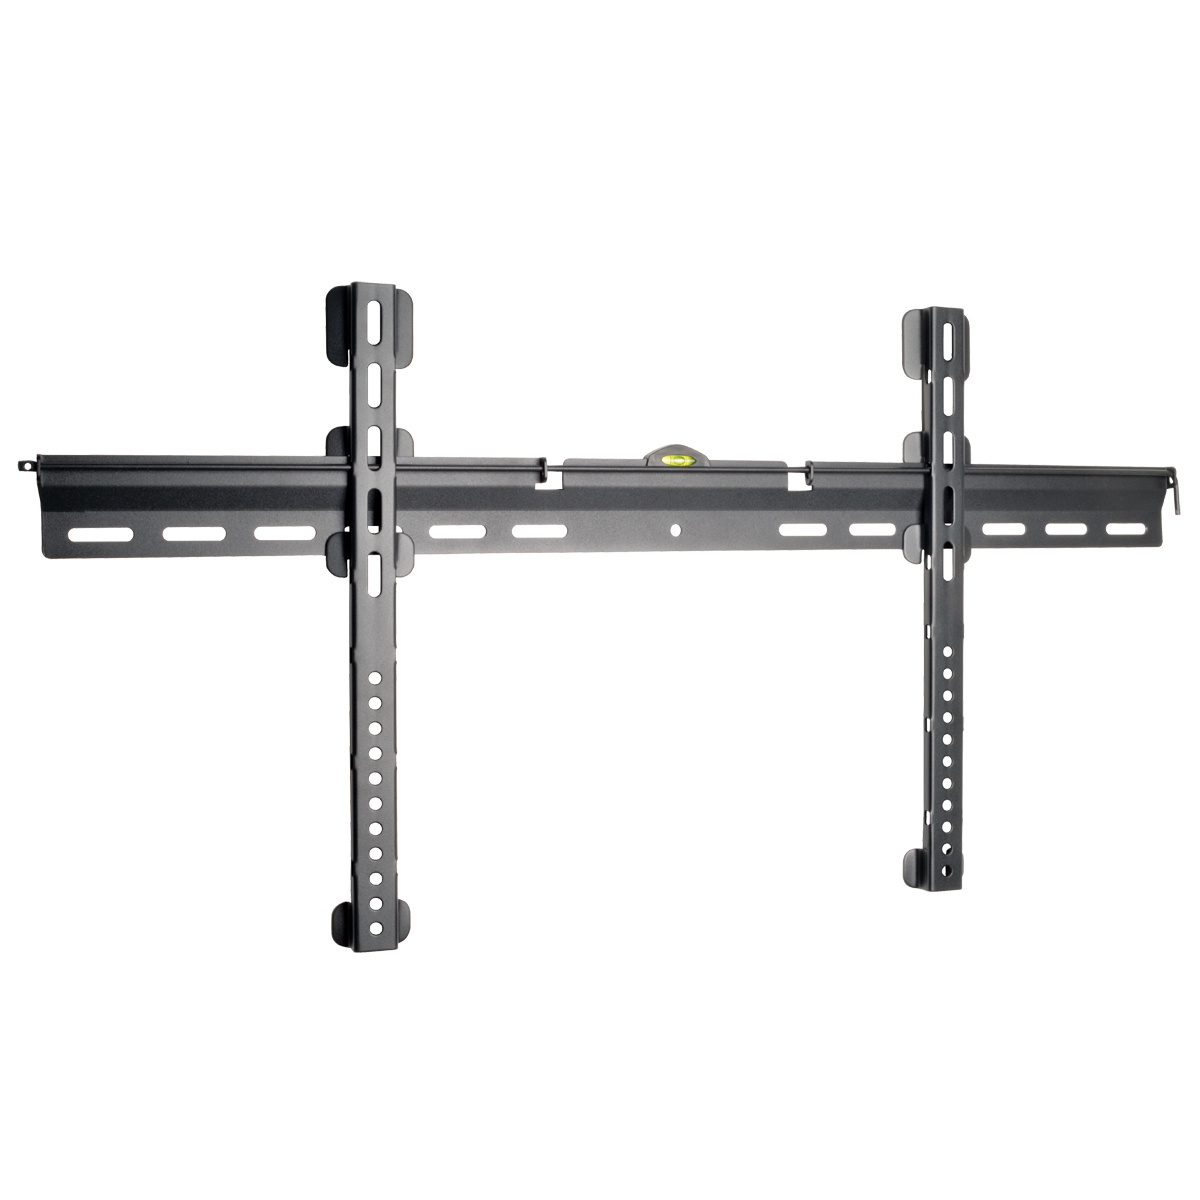 Display TV LCD Wall Monitor Mount Fixed 37 inch to 70 inch TVs / EA / Flat-Screens - Wall mount for LCD / plasma panel (Low Profile Mount) - steel - black - screen size: 37 inch -70 inch